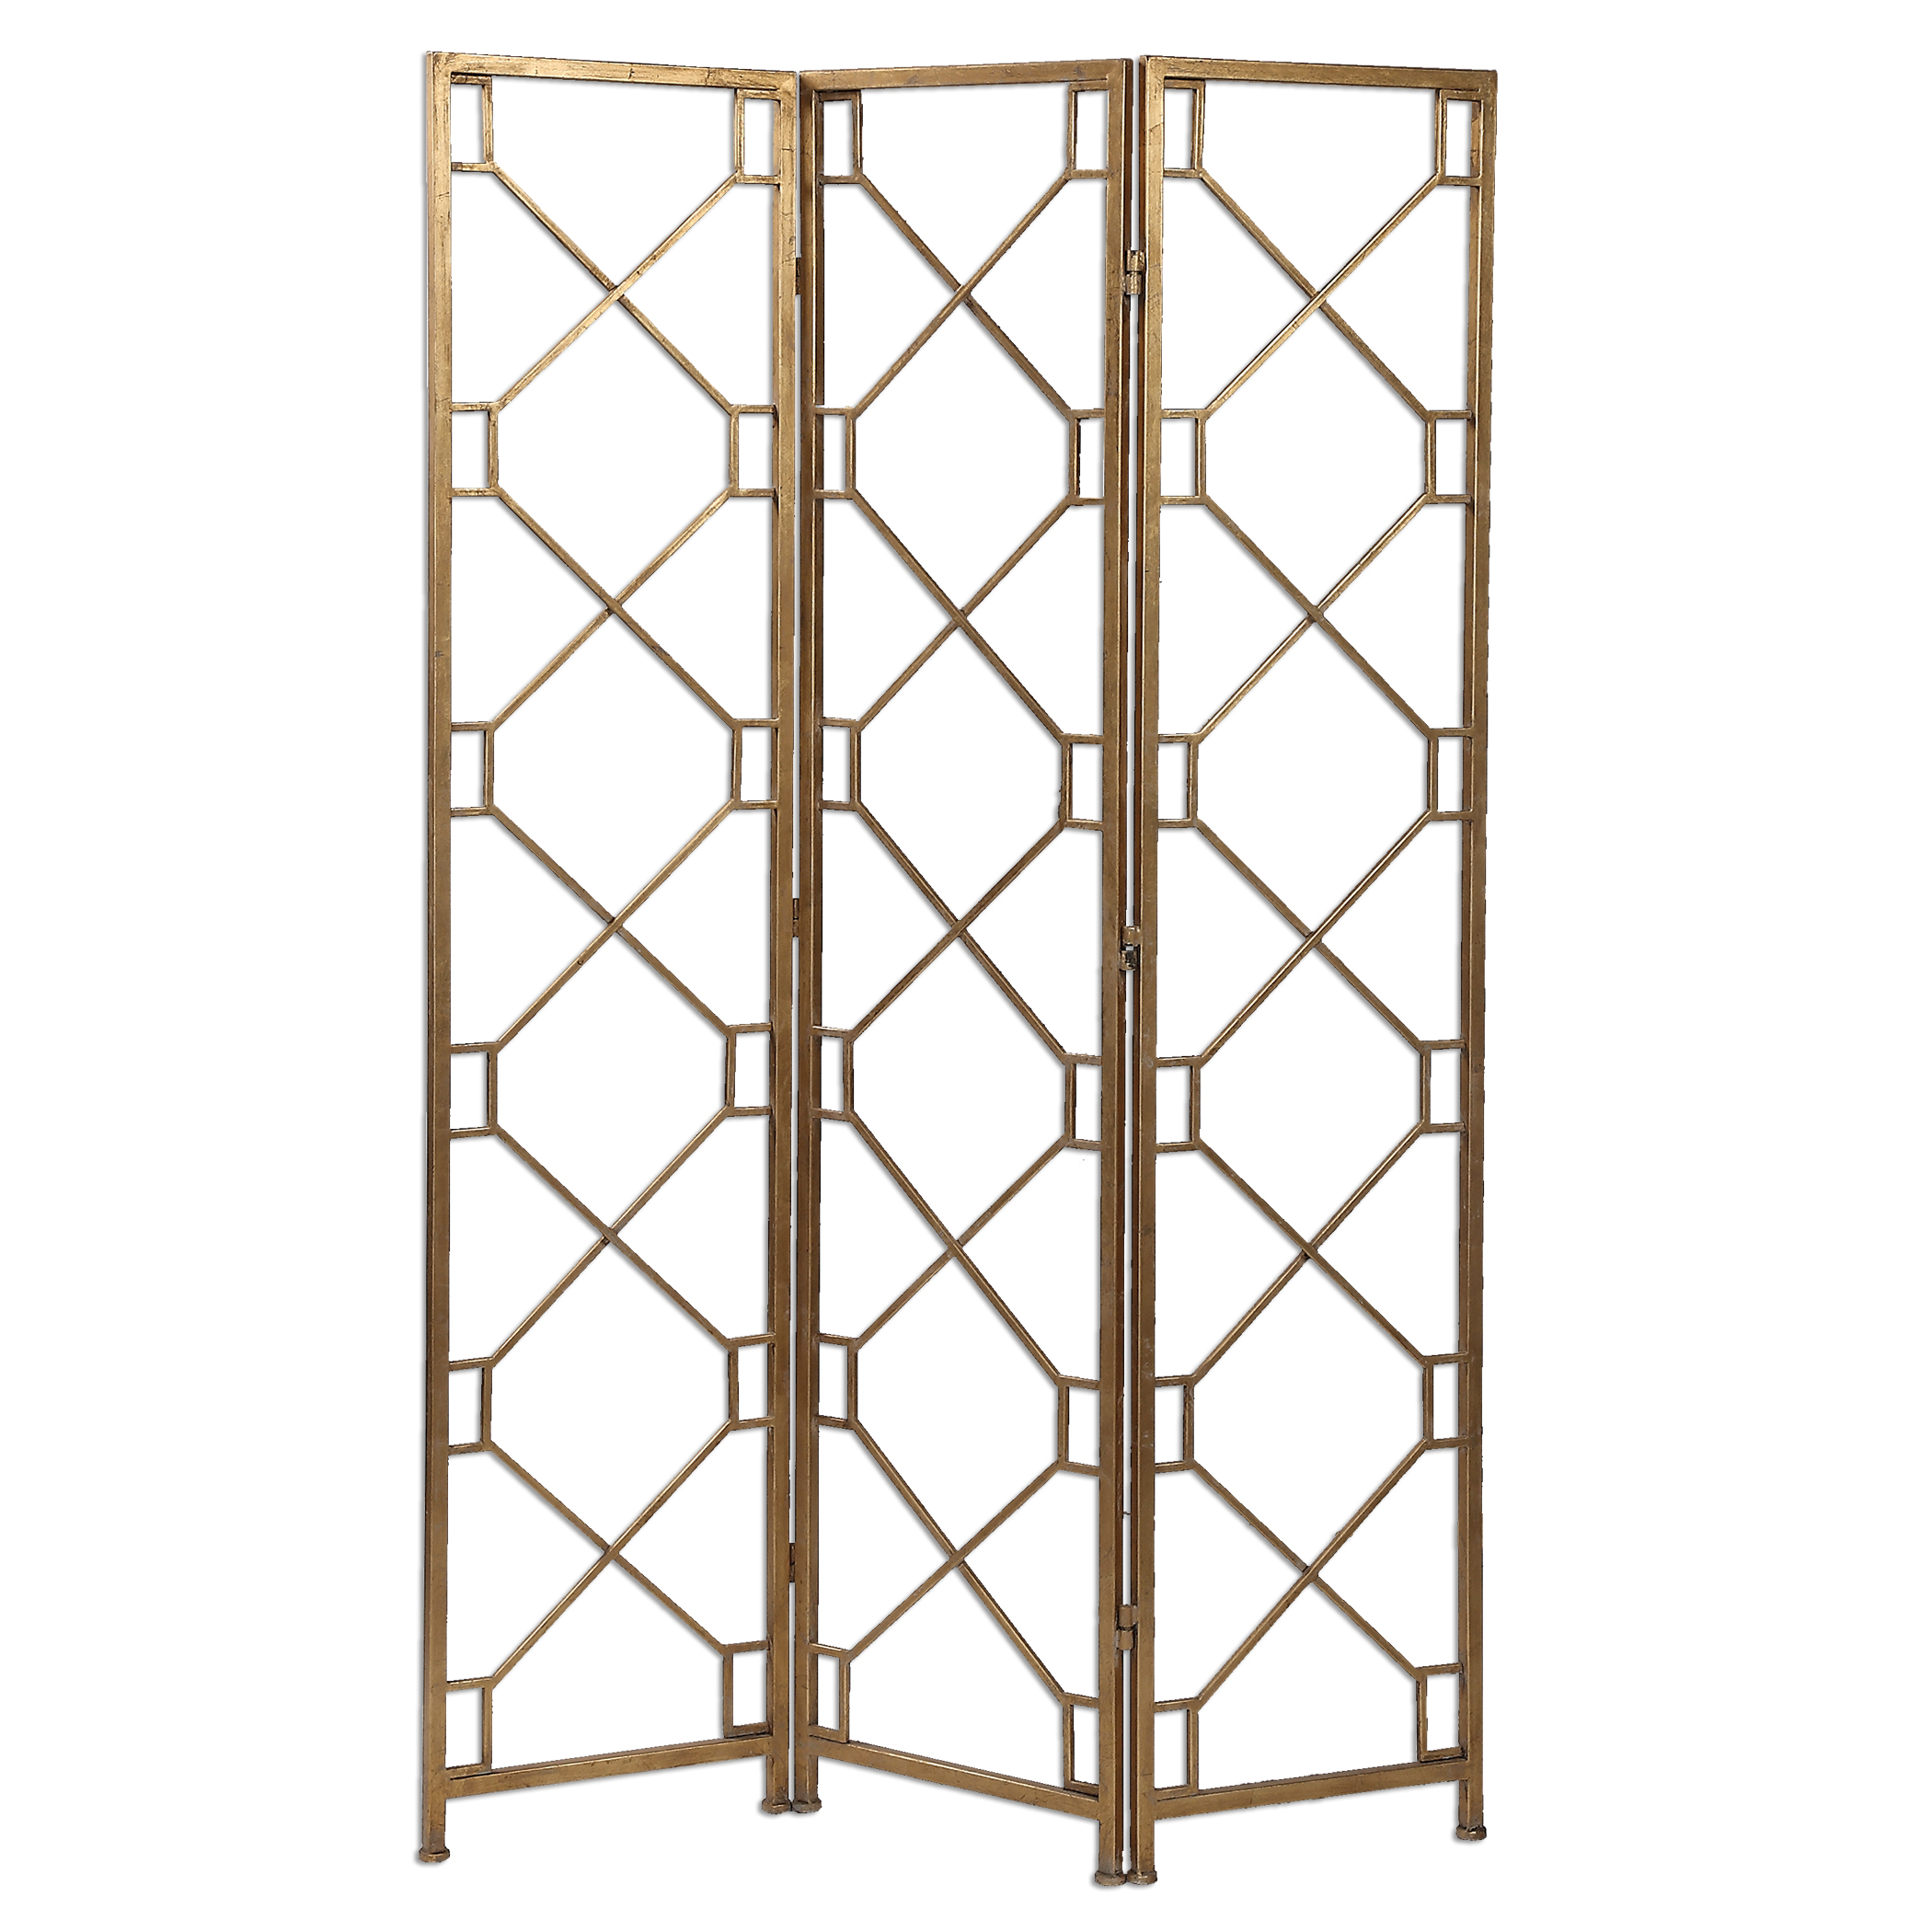 Uttermost Accent Furniture Lakaya Gold 3 Panel Screen - Item Number: 24538